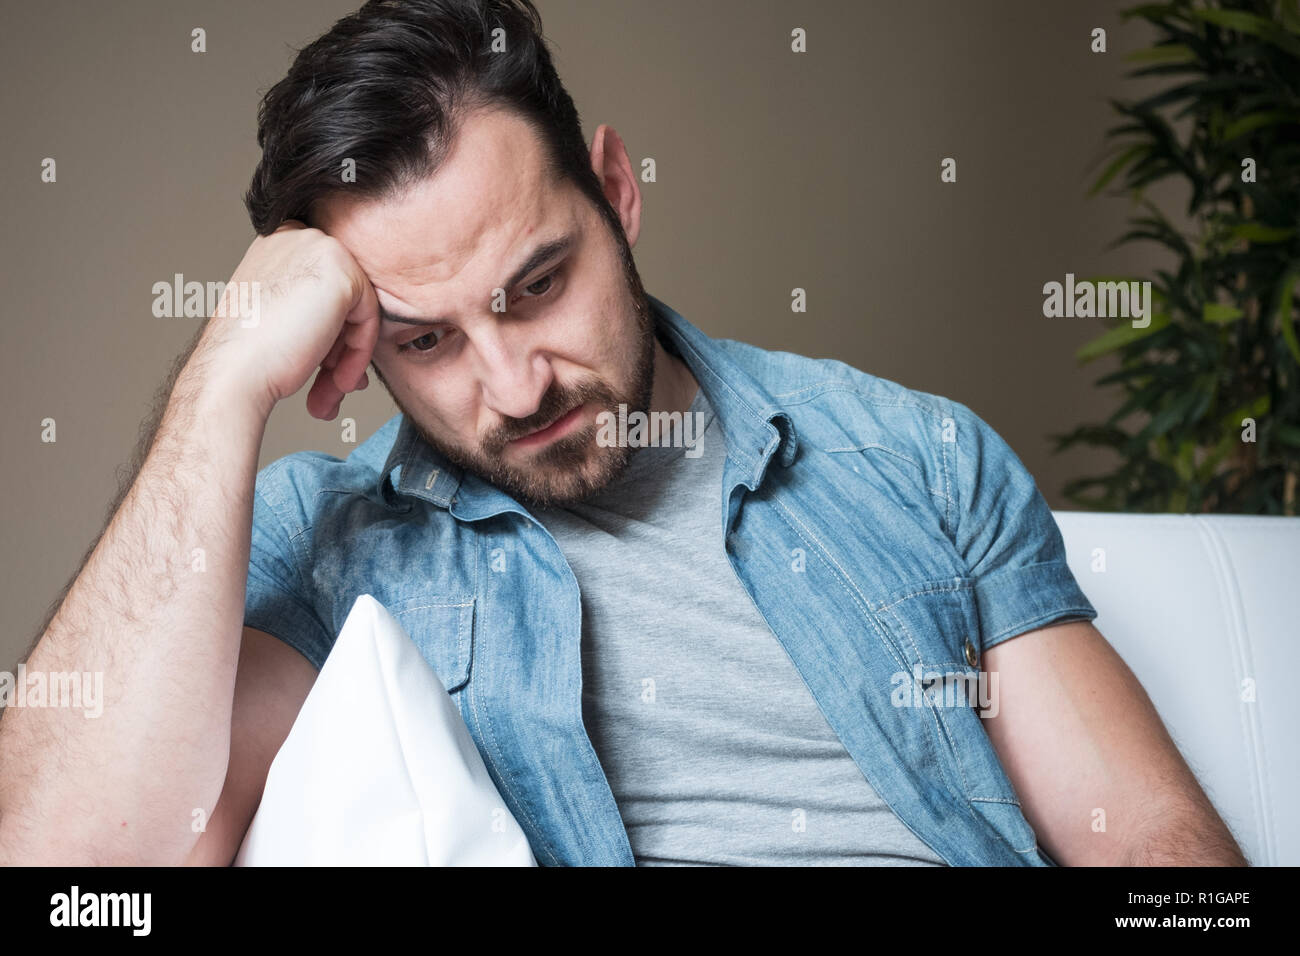 Man suffering and feeling alone at home sitting on the sofa - Stock Image